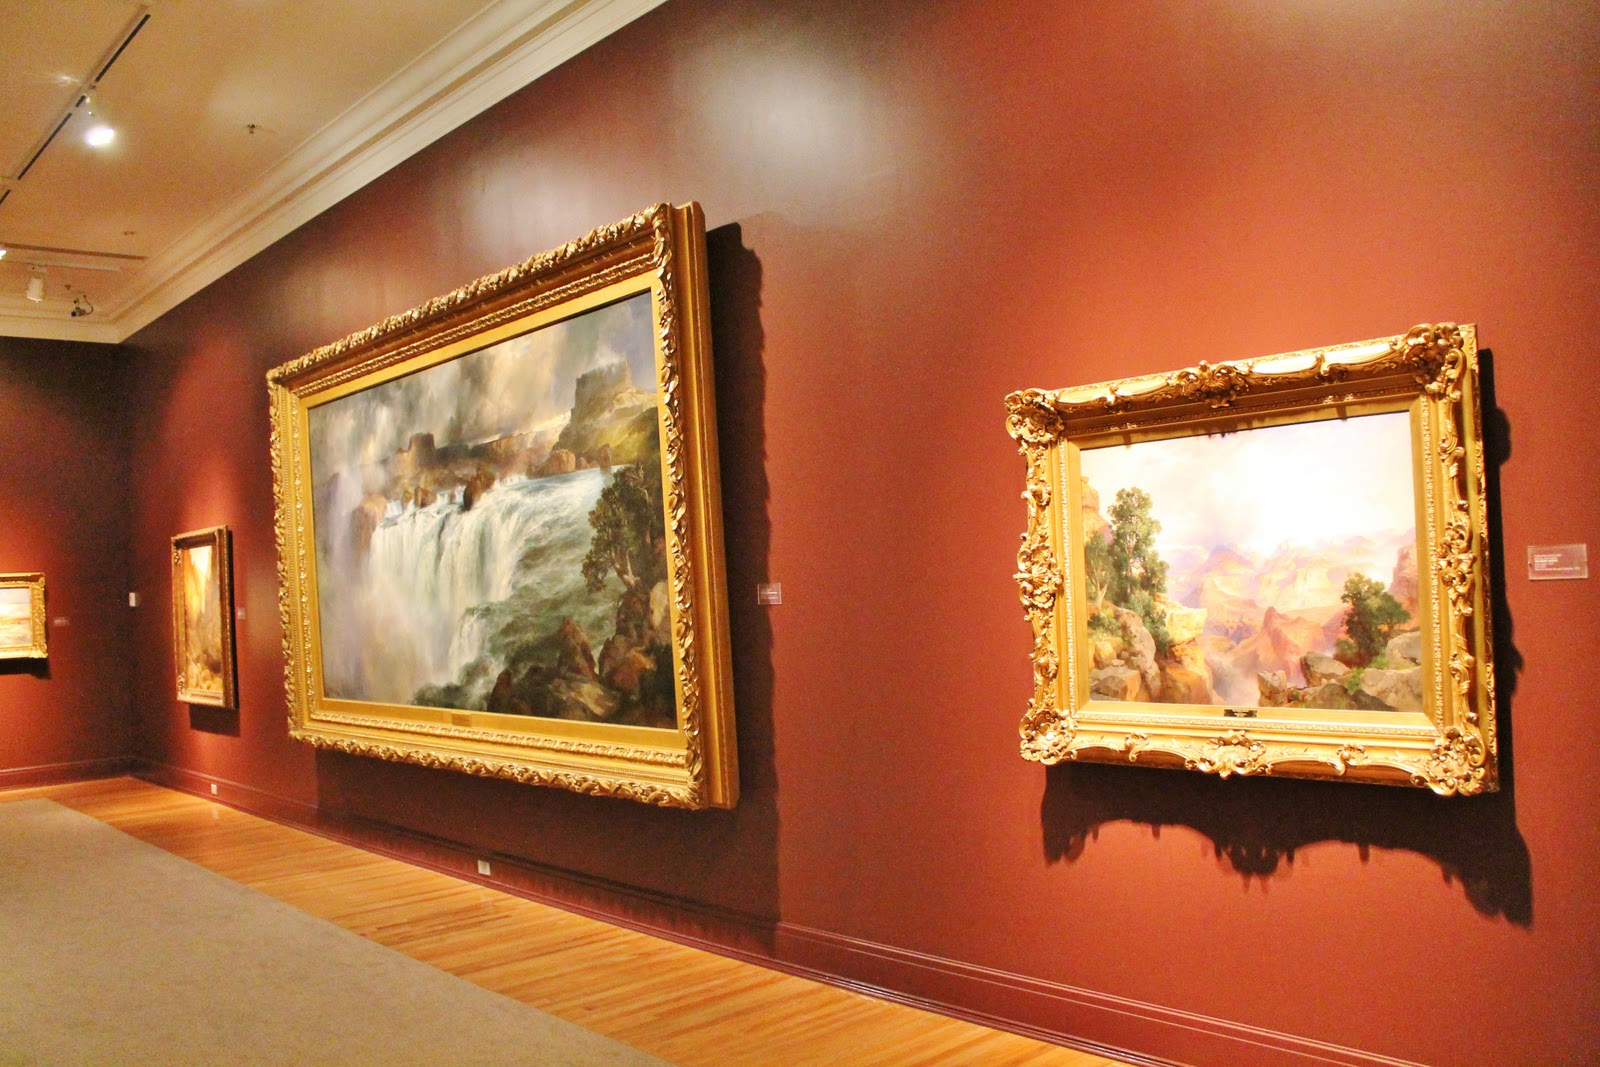 Bring a Date to Gilcrease Museum of Art in Tulsa, Oklahoma